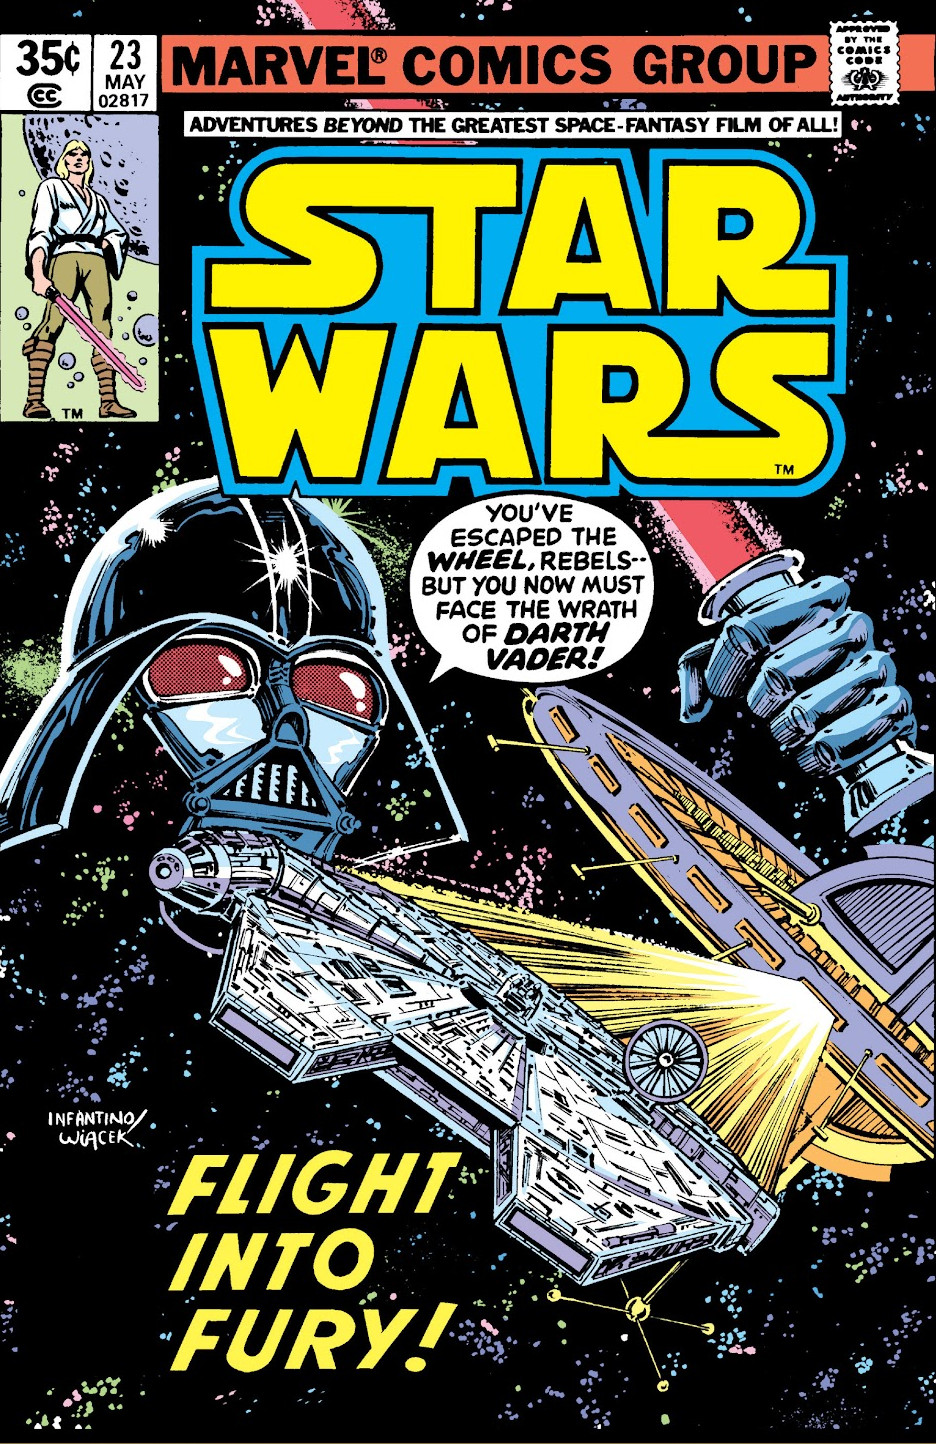 Star Wars Vol 1 23